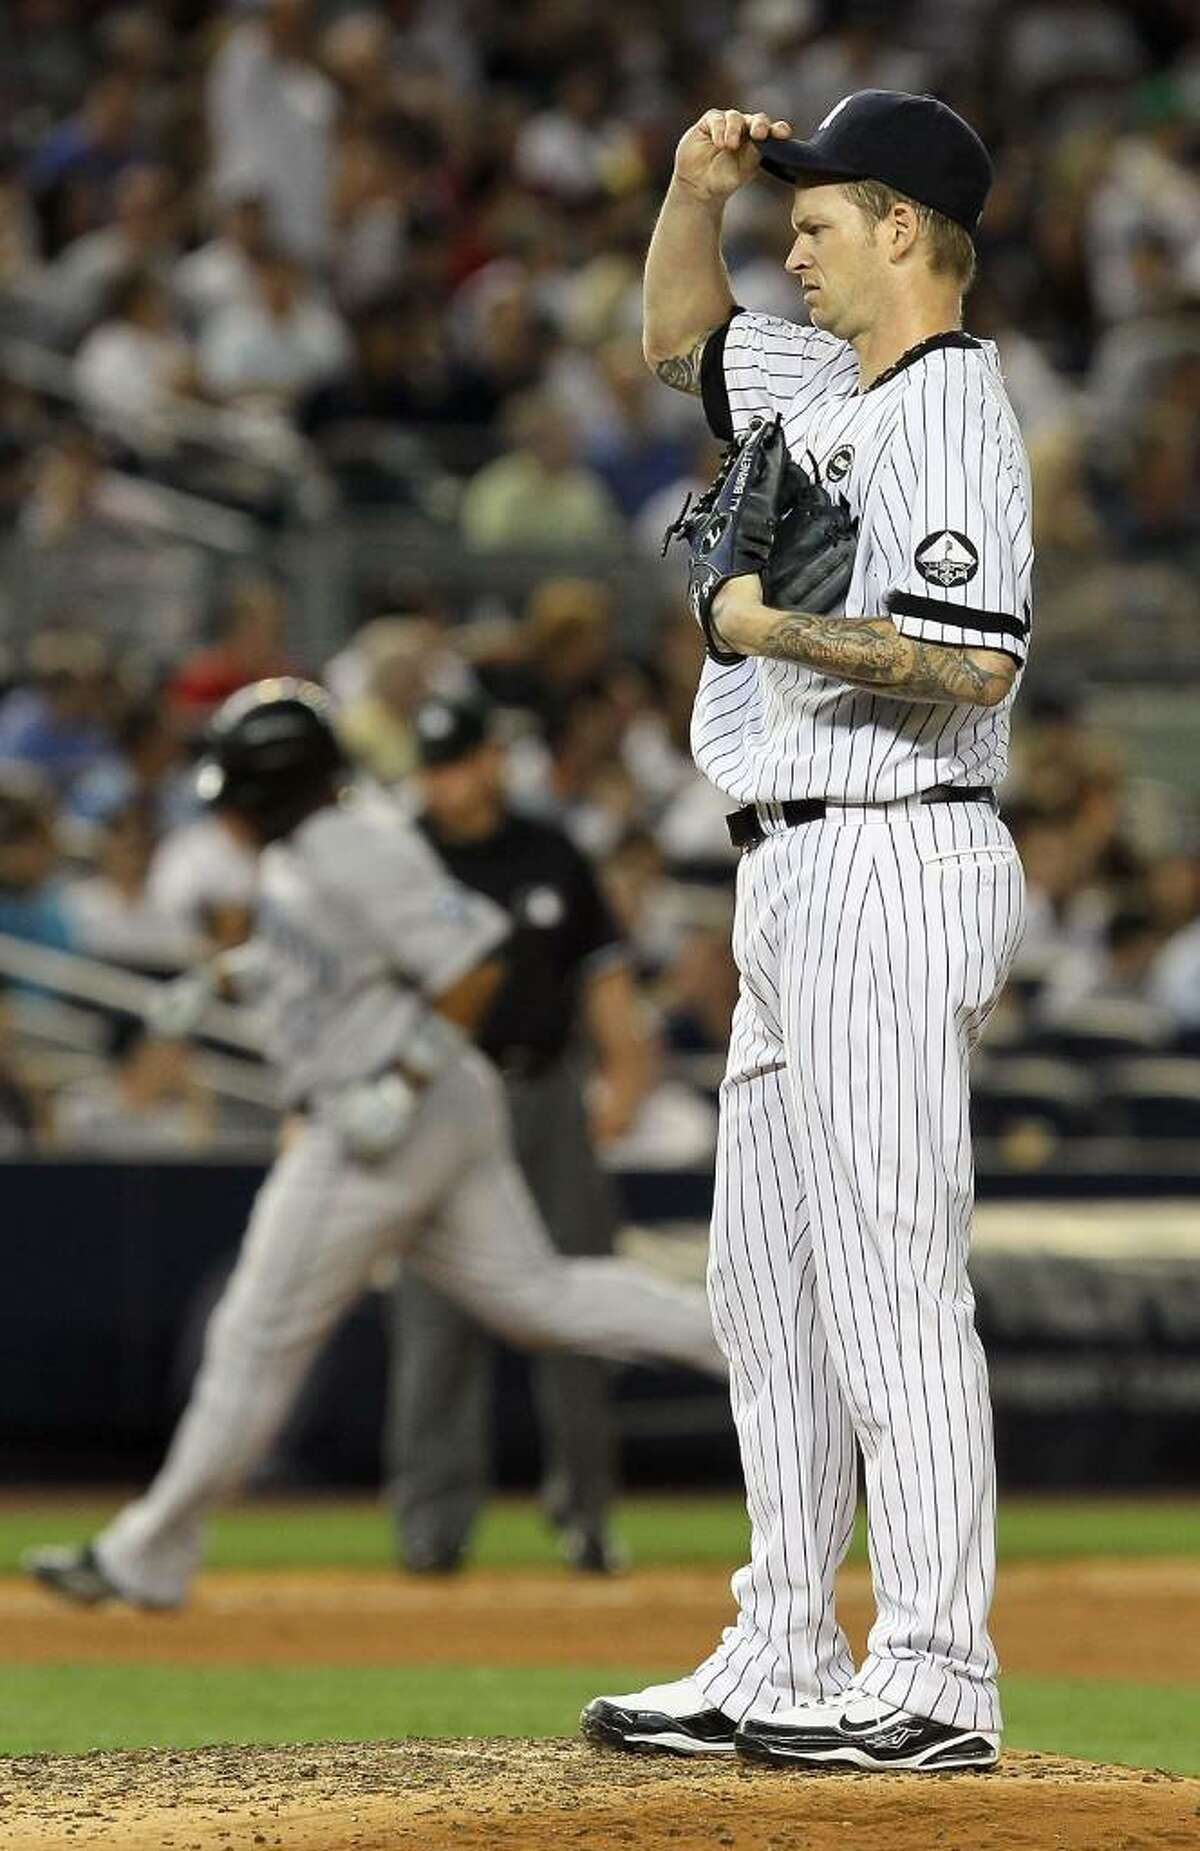 NEW YORK - AUGUST 02: A.J. Burnett #34 of the New York Yankees reacts during the fifth inning after surrendering a two run home run to Edwin Encarnacion #12 of the Toronto Blue Jays on August 2, 2010 at Yankee Stadium in the Bronx borough of New York City. (Photo by Jim McIsaac/Getty Images) *** Local Caption *** A.J. Burnett;Edwin Encarnacion